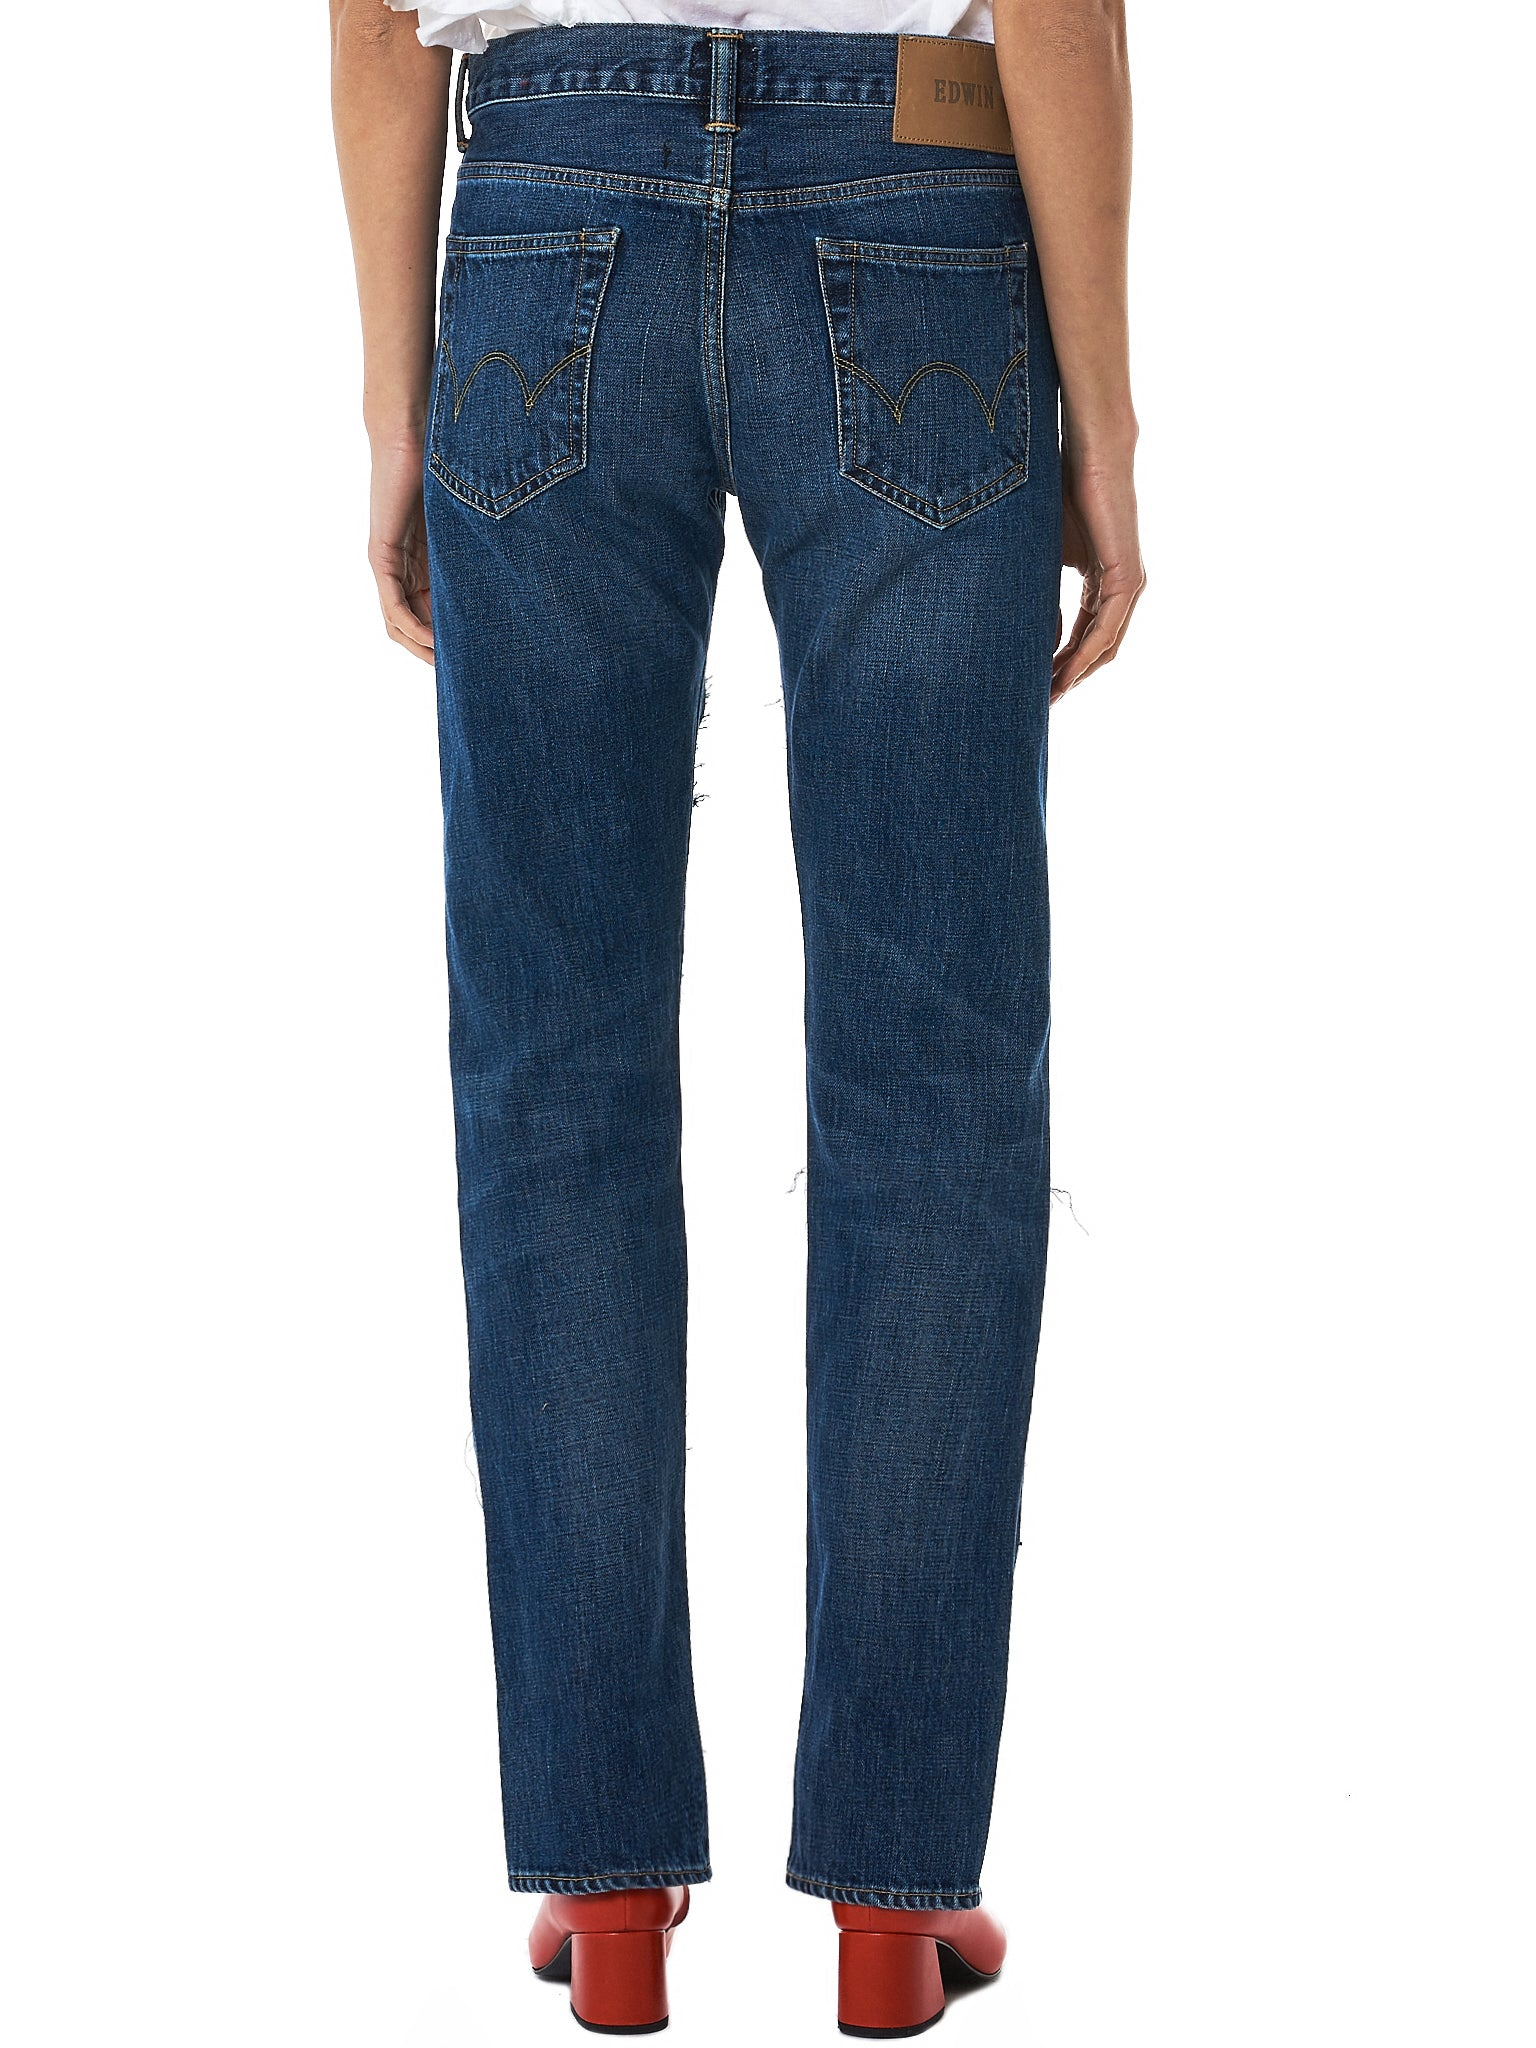 Lutz Huelle Cutout Denim Pants - Hlorenzo Back